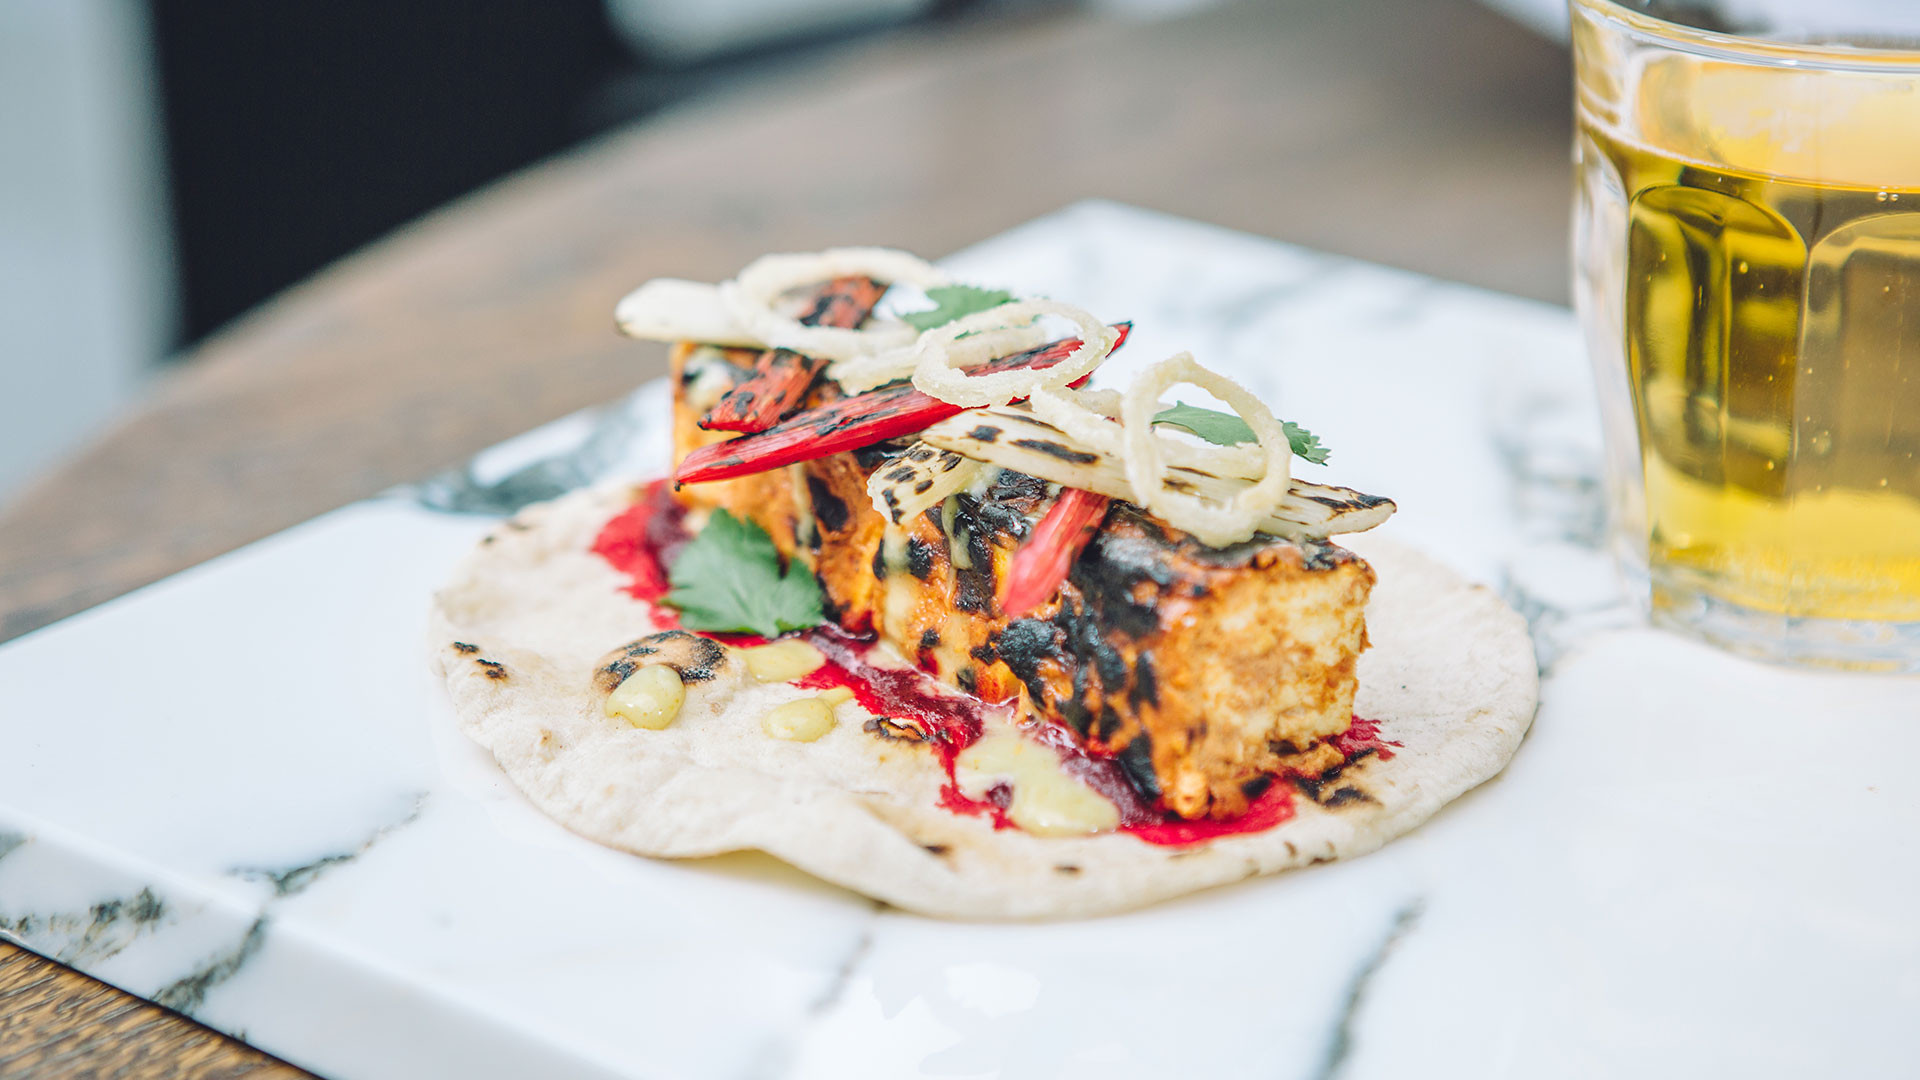 The paneer bab from Le Bab